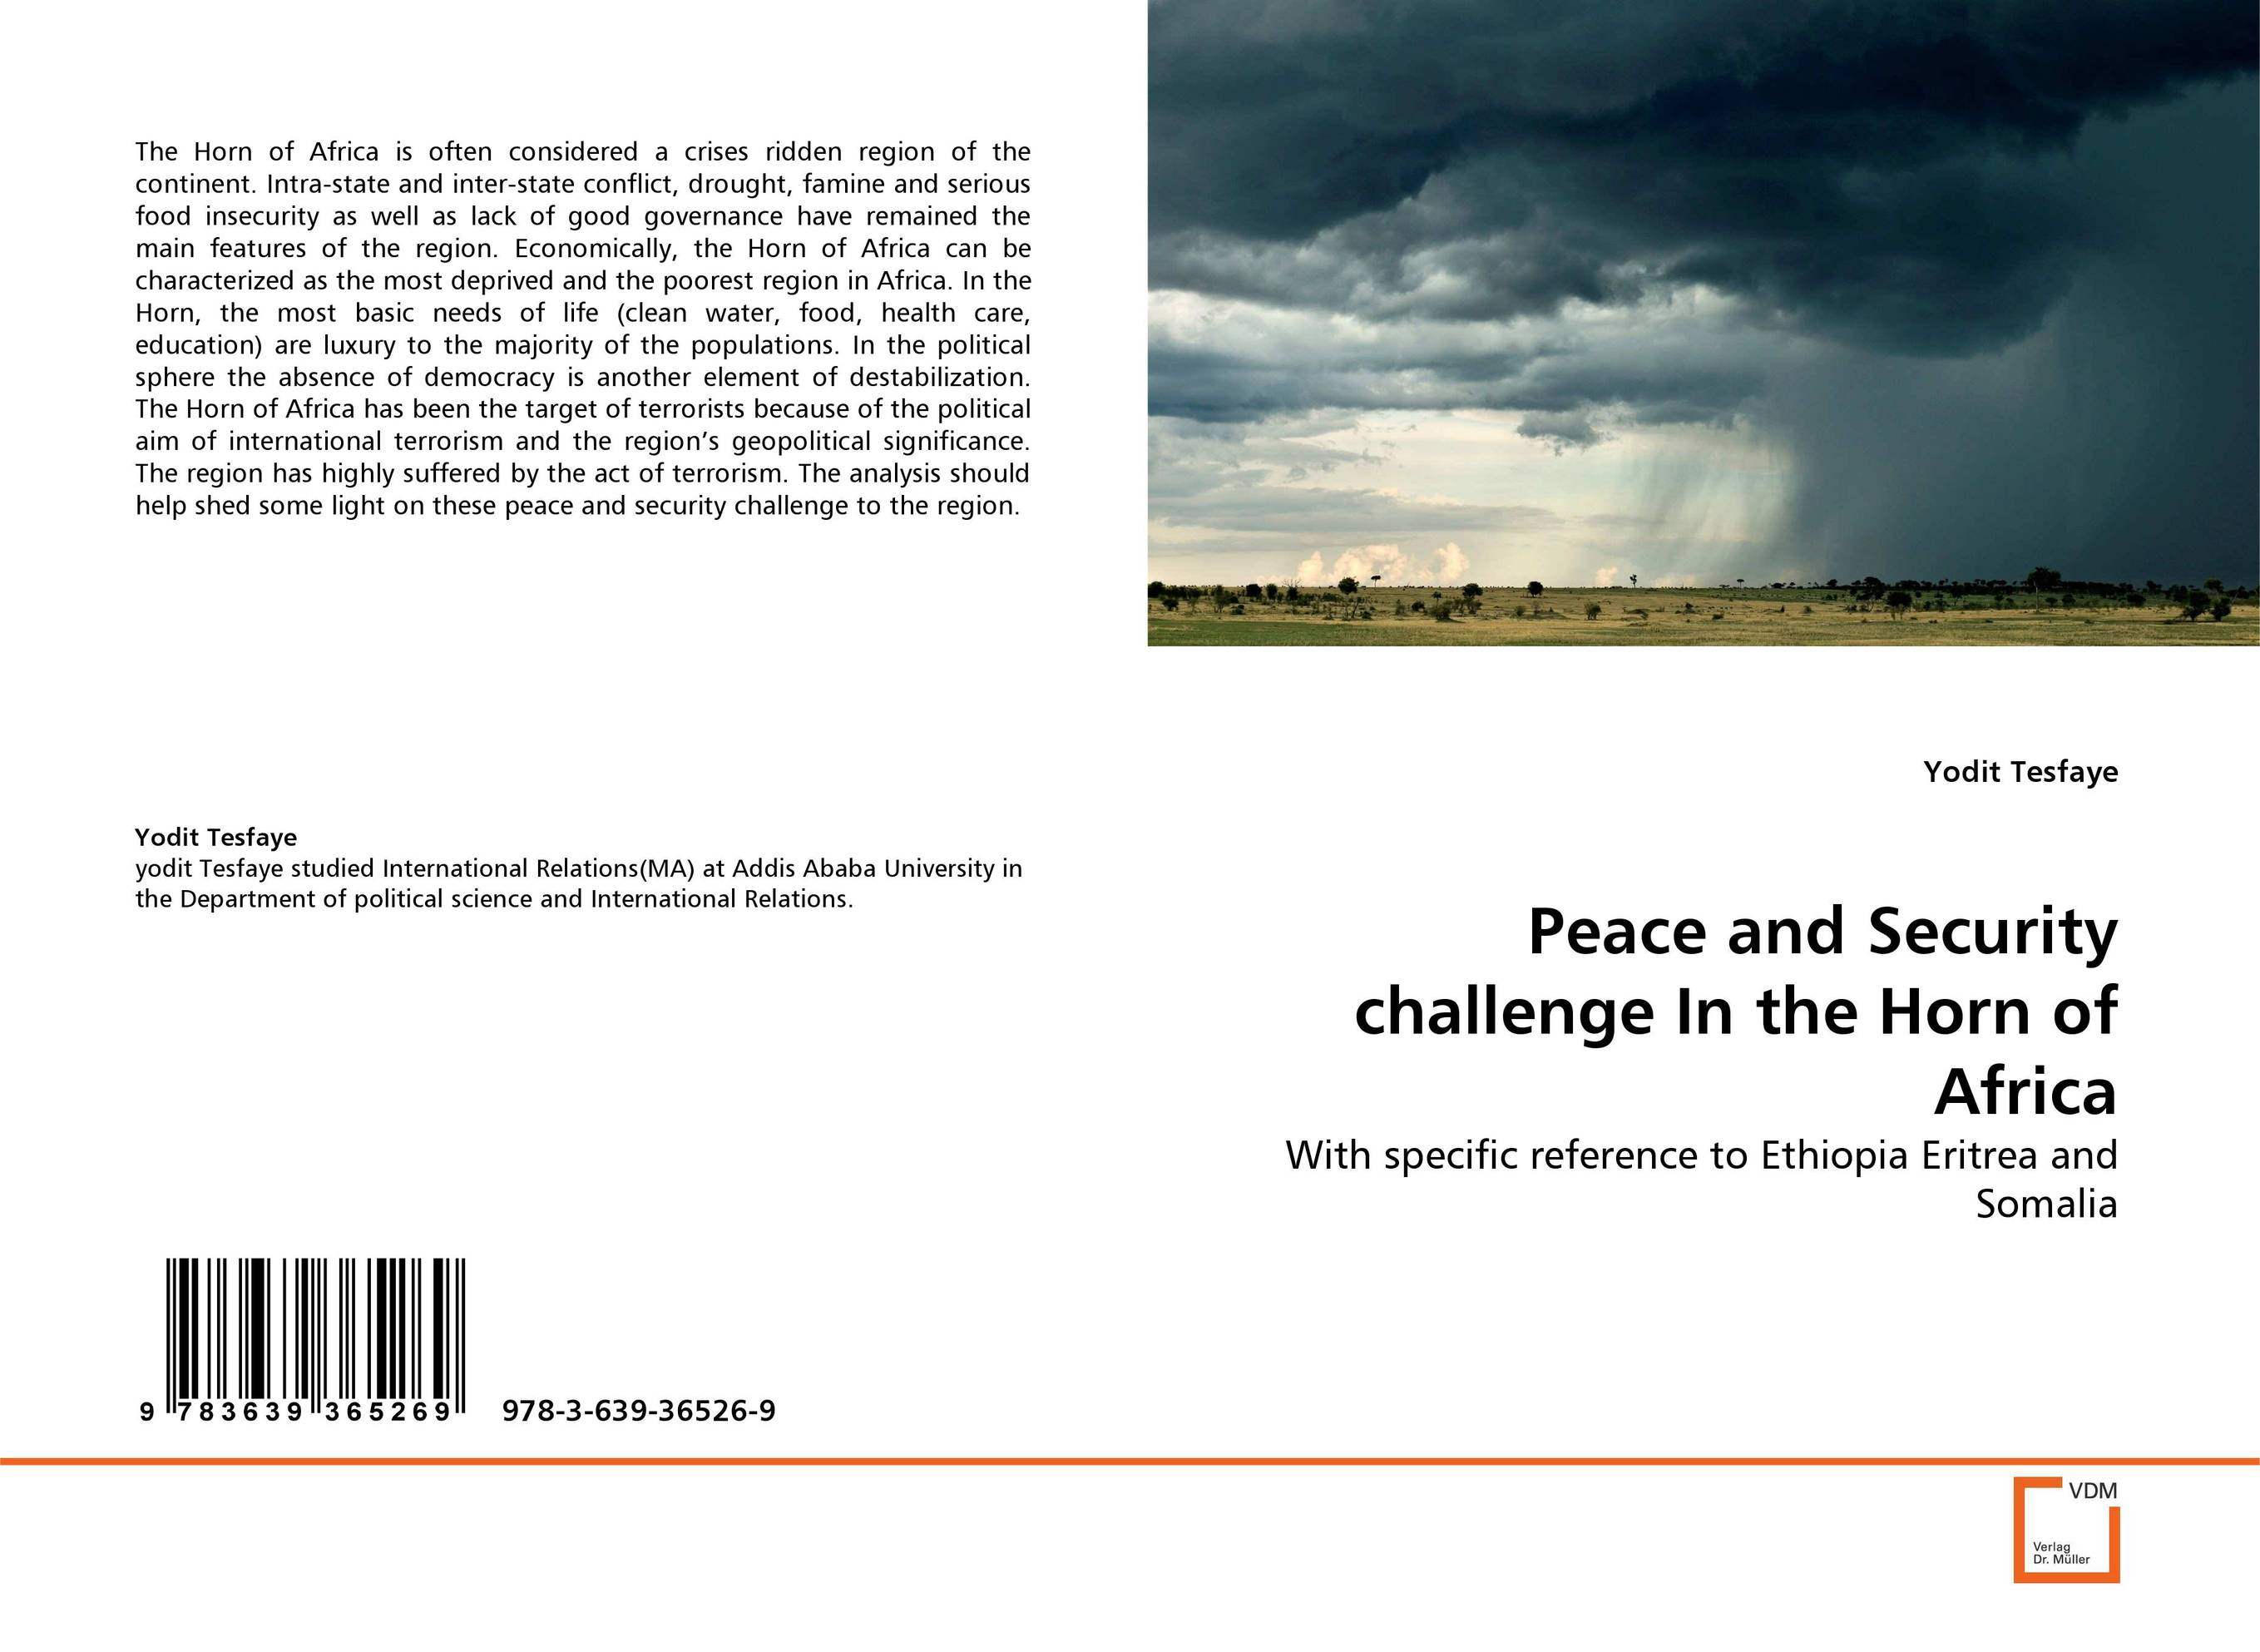 Фото Peace and Security challenge In the Horn of Africa cervical cancer in amhara region in ethiopia